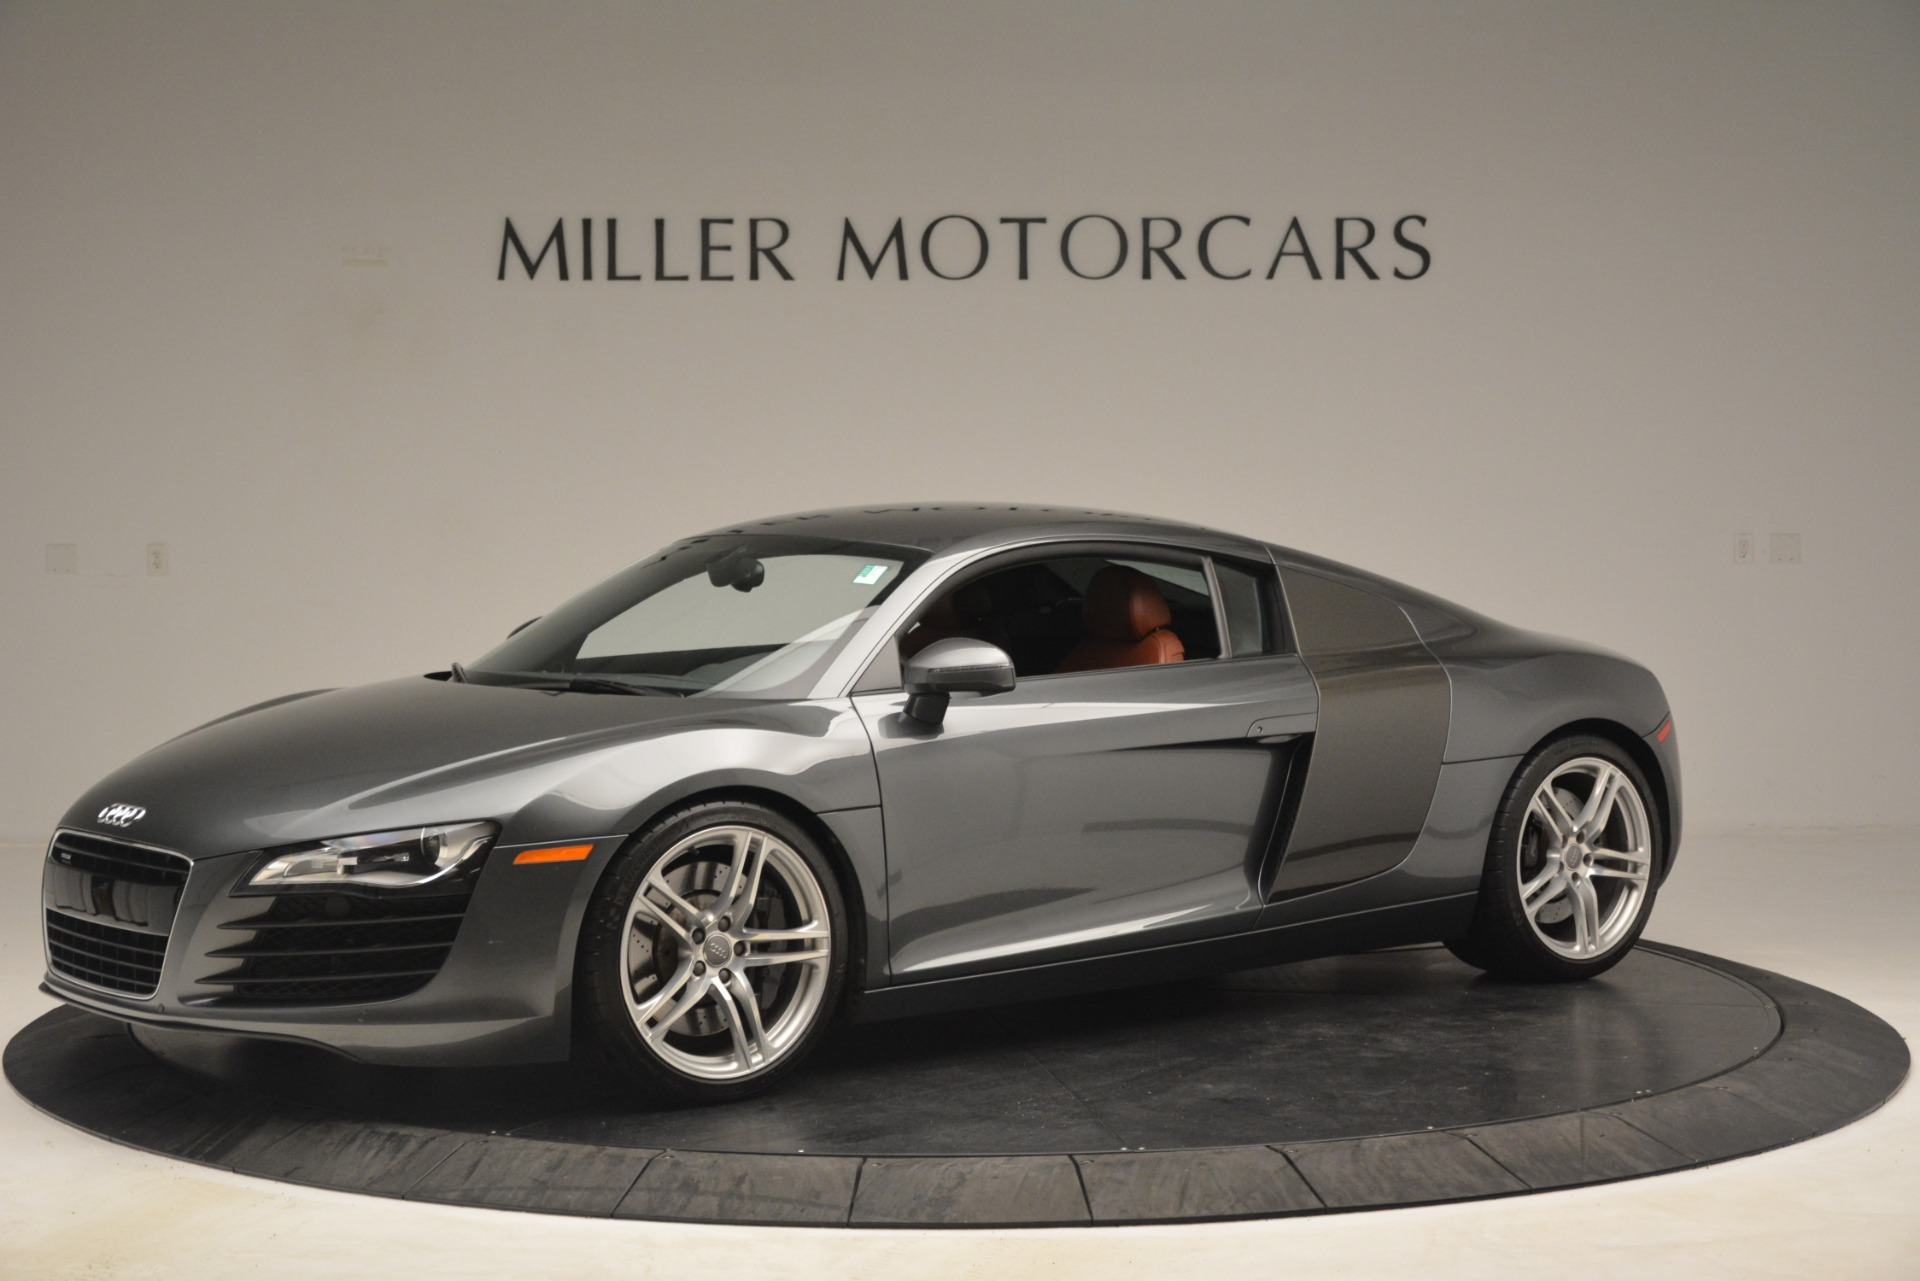 Used 2009 Audi R8 quattro For Sale In Greenwich, CT 3228_p2